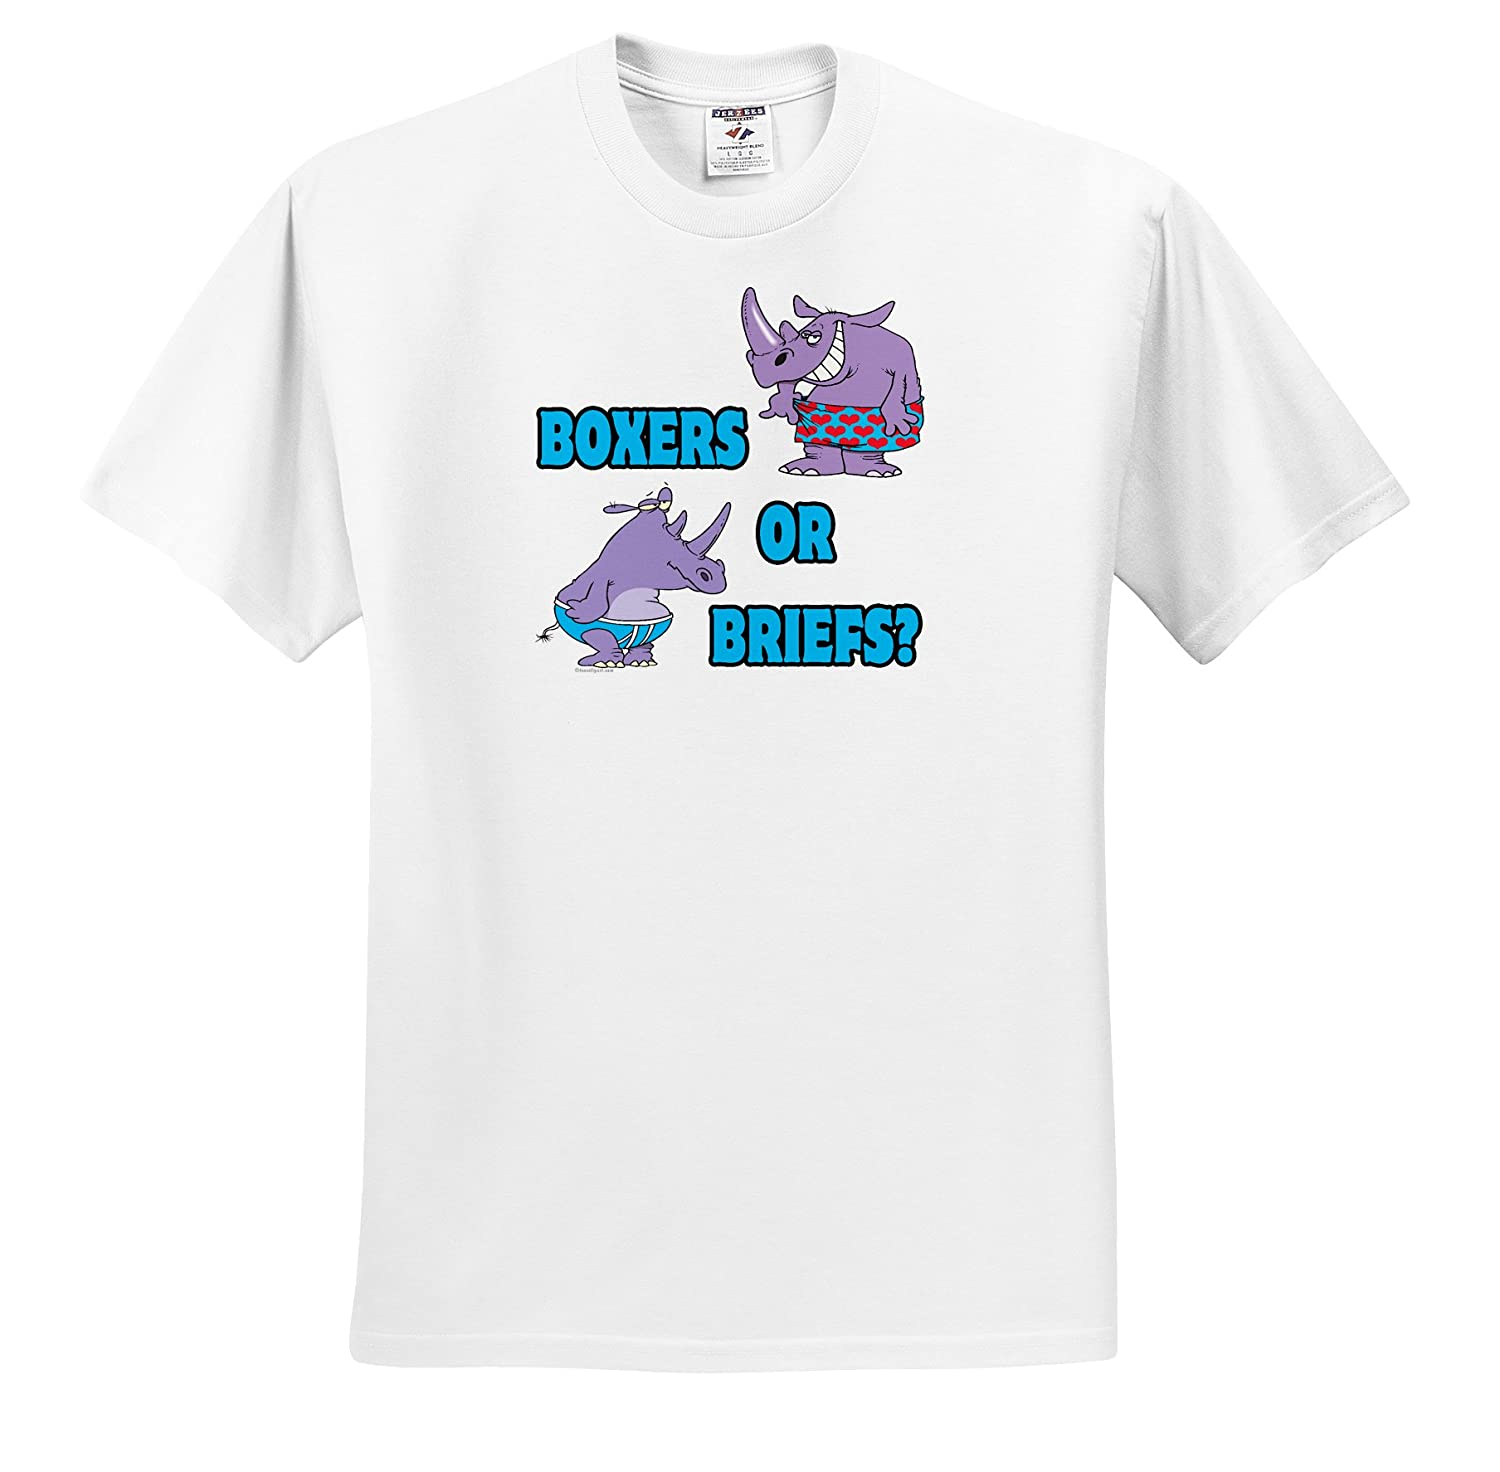 3T T-Shirts Boxers or Briefs Funny Undies Rhinos Dooni Designs Random Toons Toddler T-Shirt